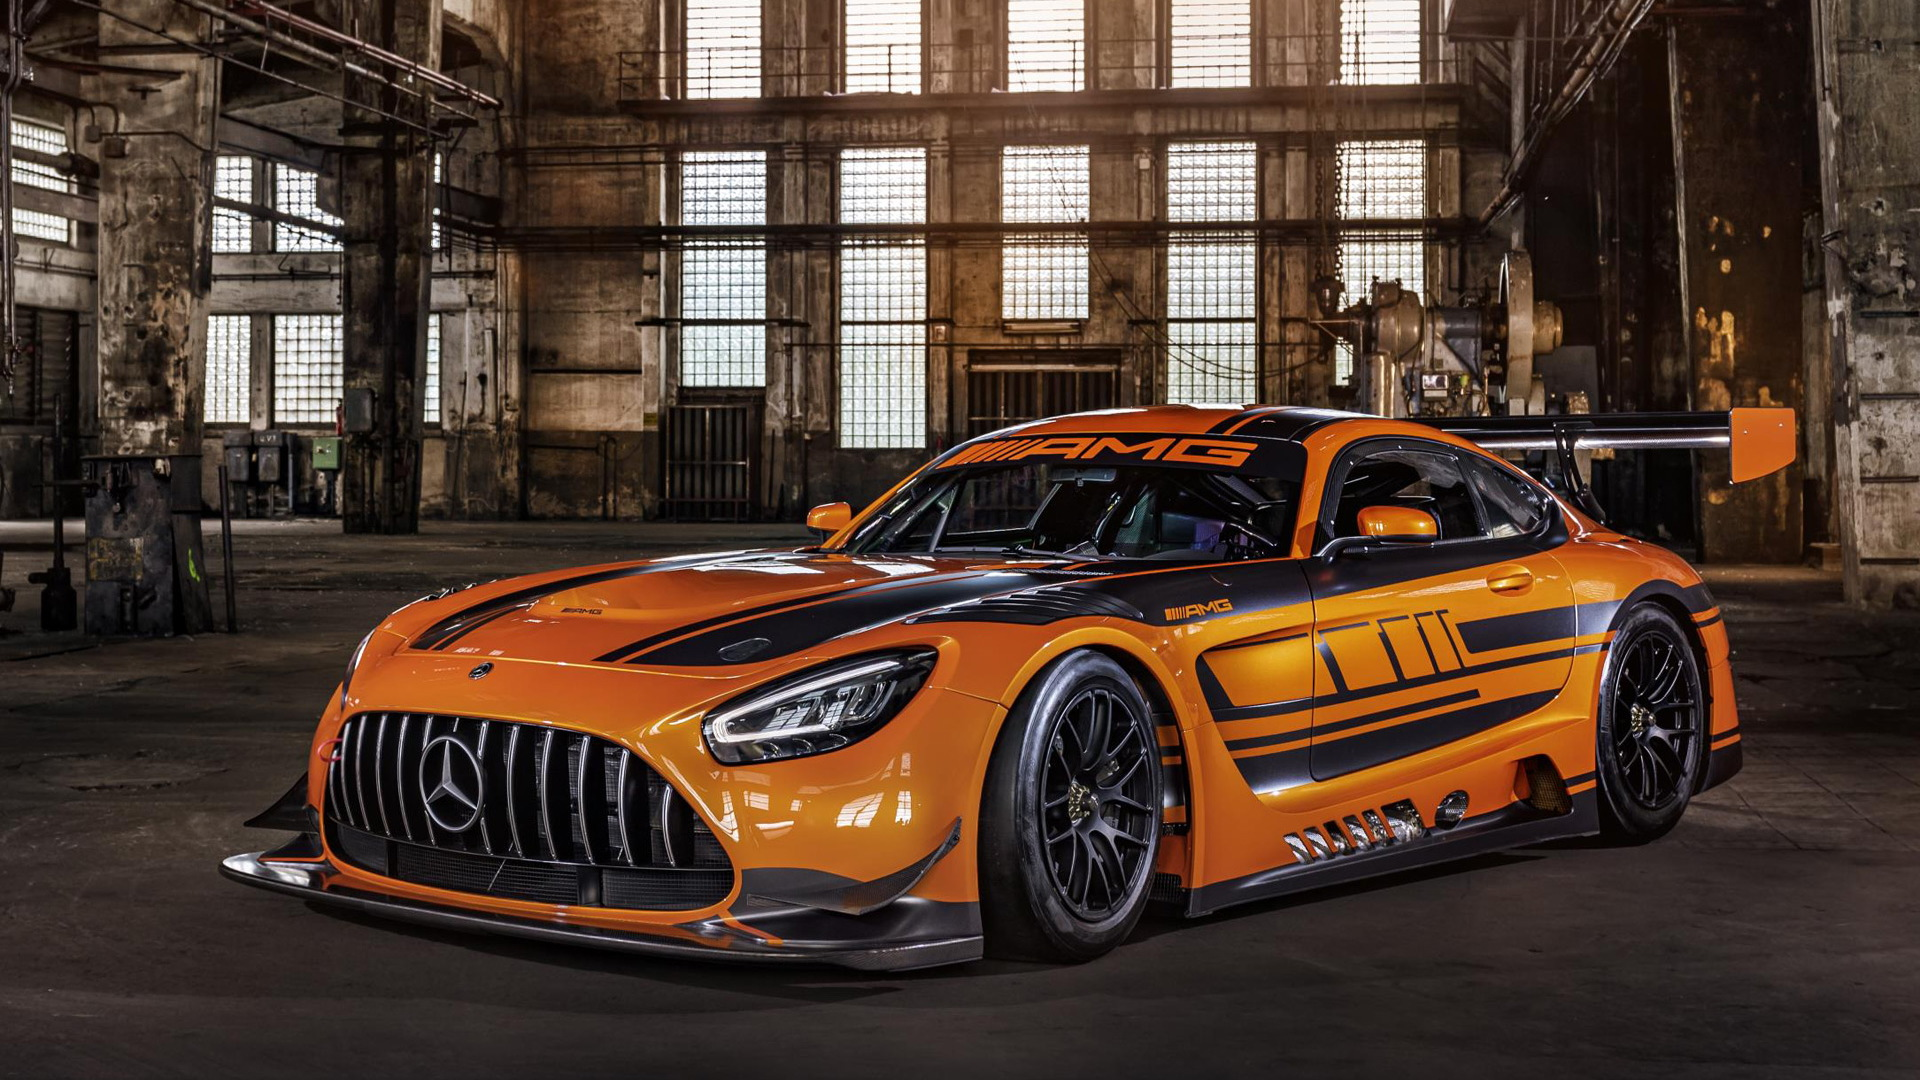 2020 Mercedes-AMG GT3 race car